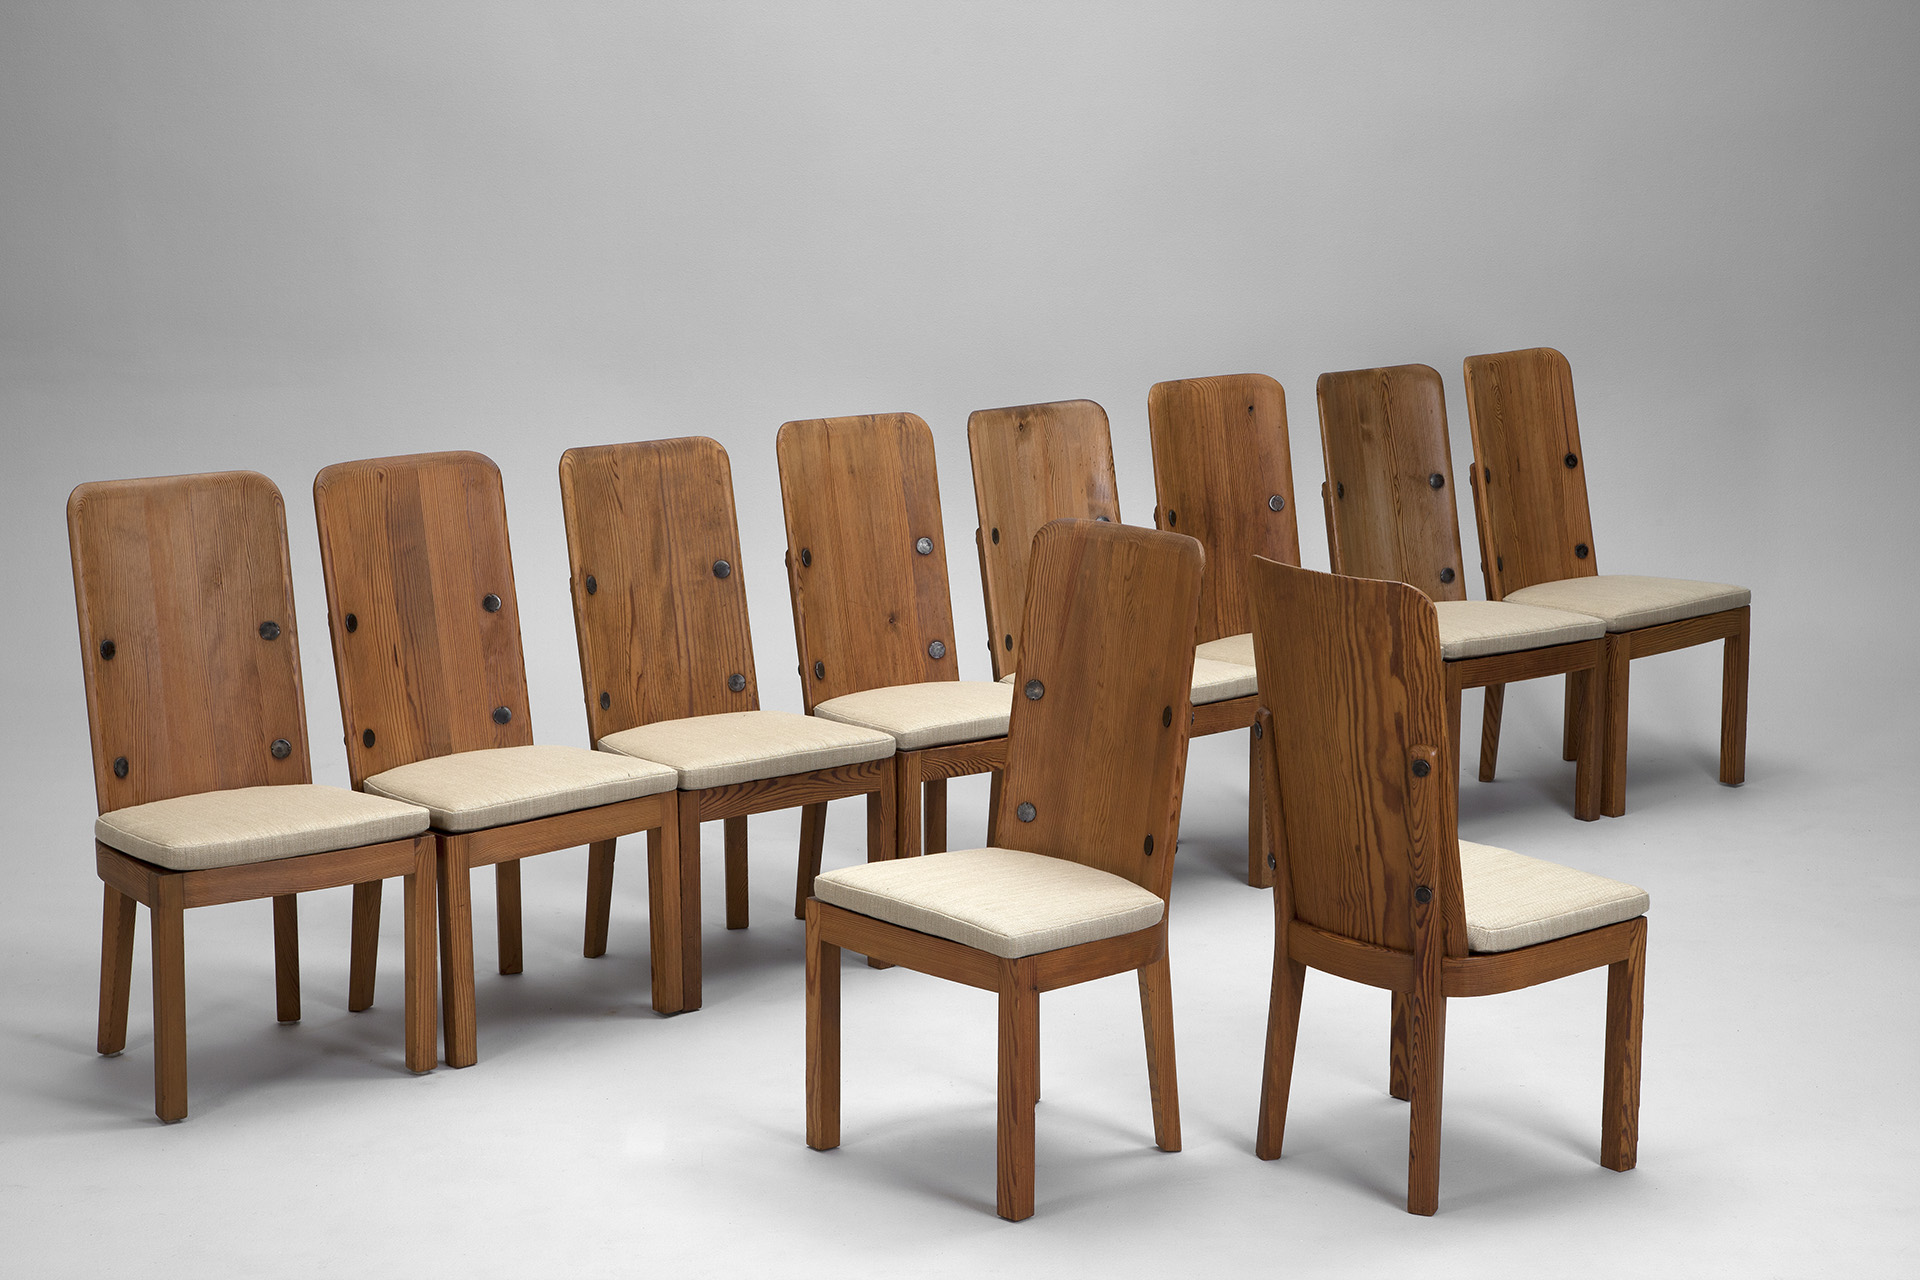 Set of Ten 'Lovö' Chairs